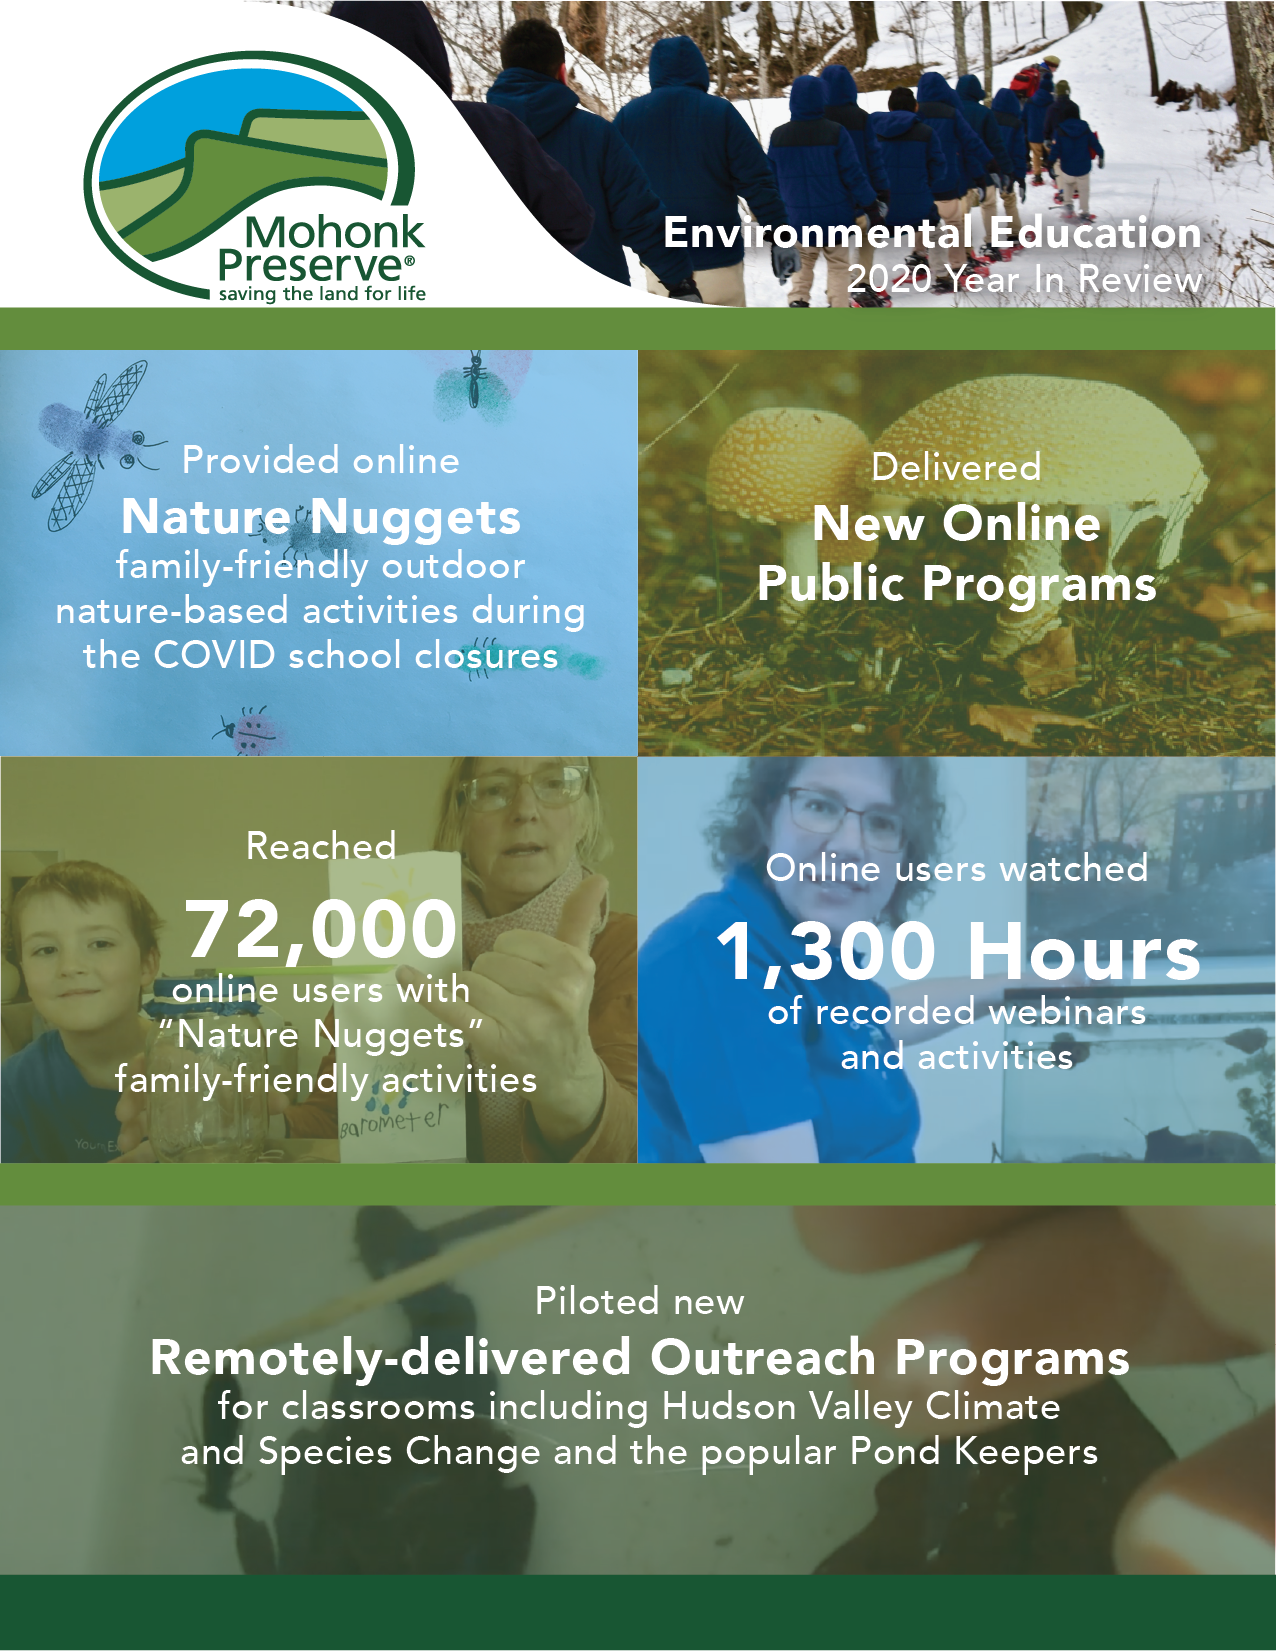 """Environmental Education 2020 Year In Review; Provided online Nature Nuggets family-friendly outdoor nature-based activities suring the COVID school closures; Delivered new online public programs; Reached 72,000 online users with """"Nature Nuggets"""" family-friendly activities; online users watched 1,300 hours of recorded webinars and activities; Piloted new remotely-delivered Outreach programs for classrooms including Hudson Valley Climate and Species Change and the popular Pond Keepers"""